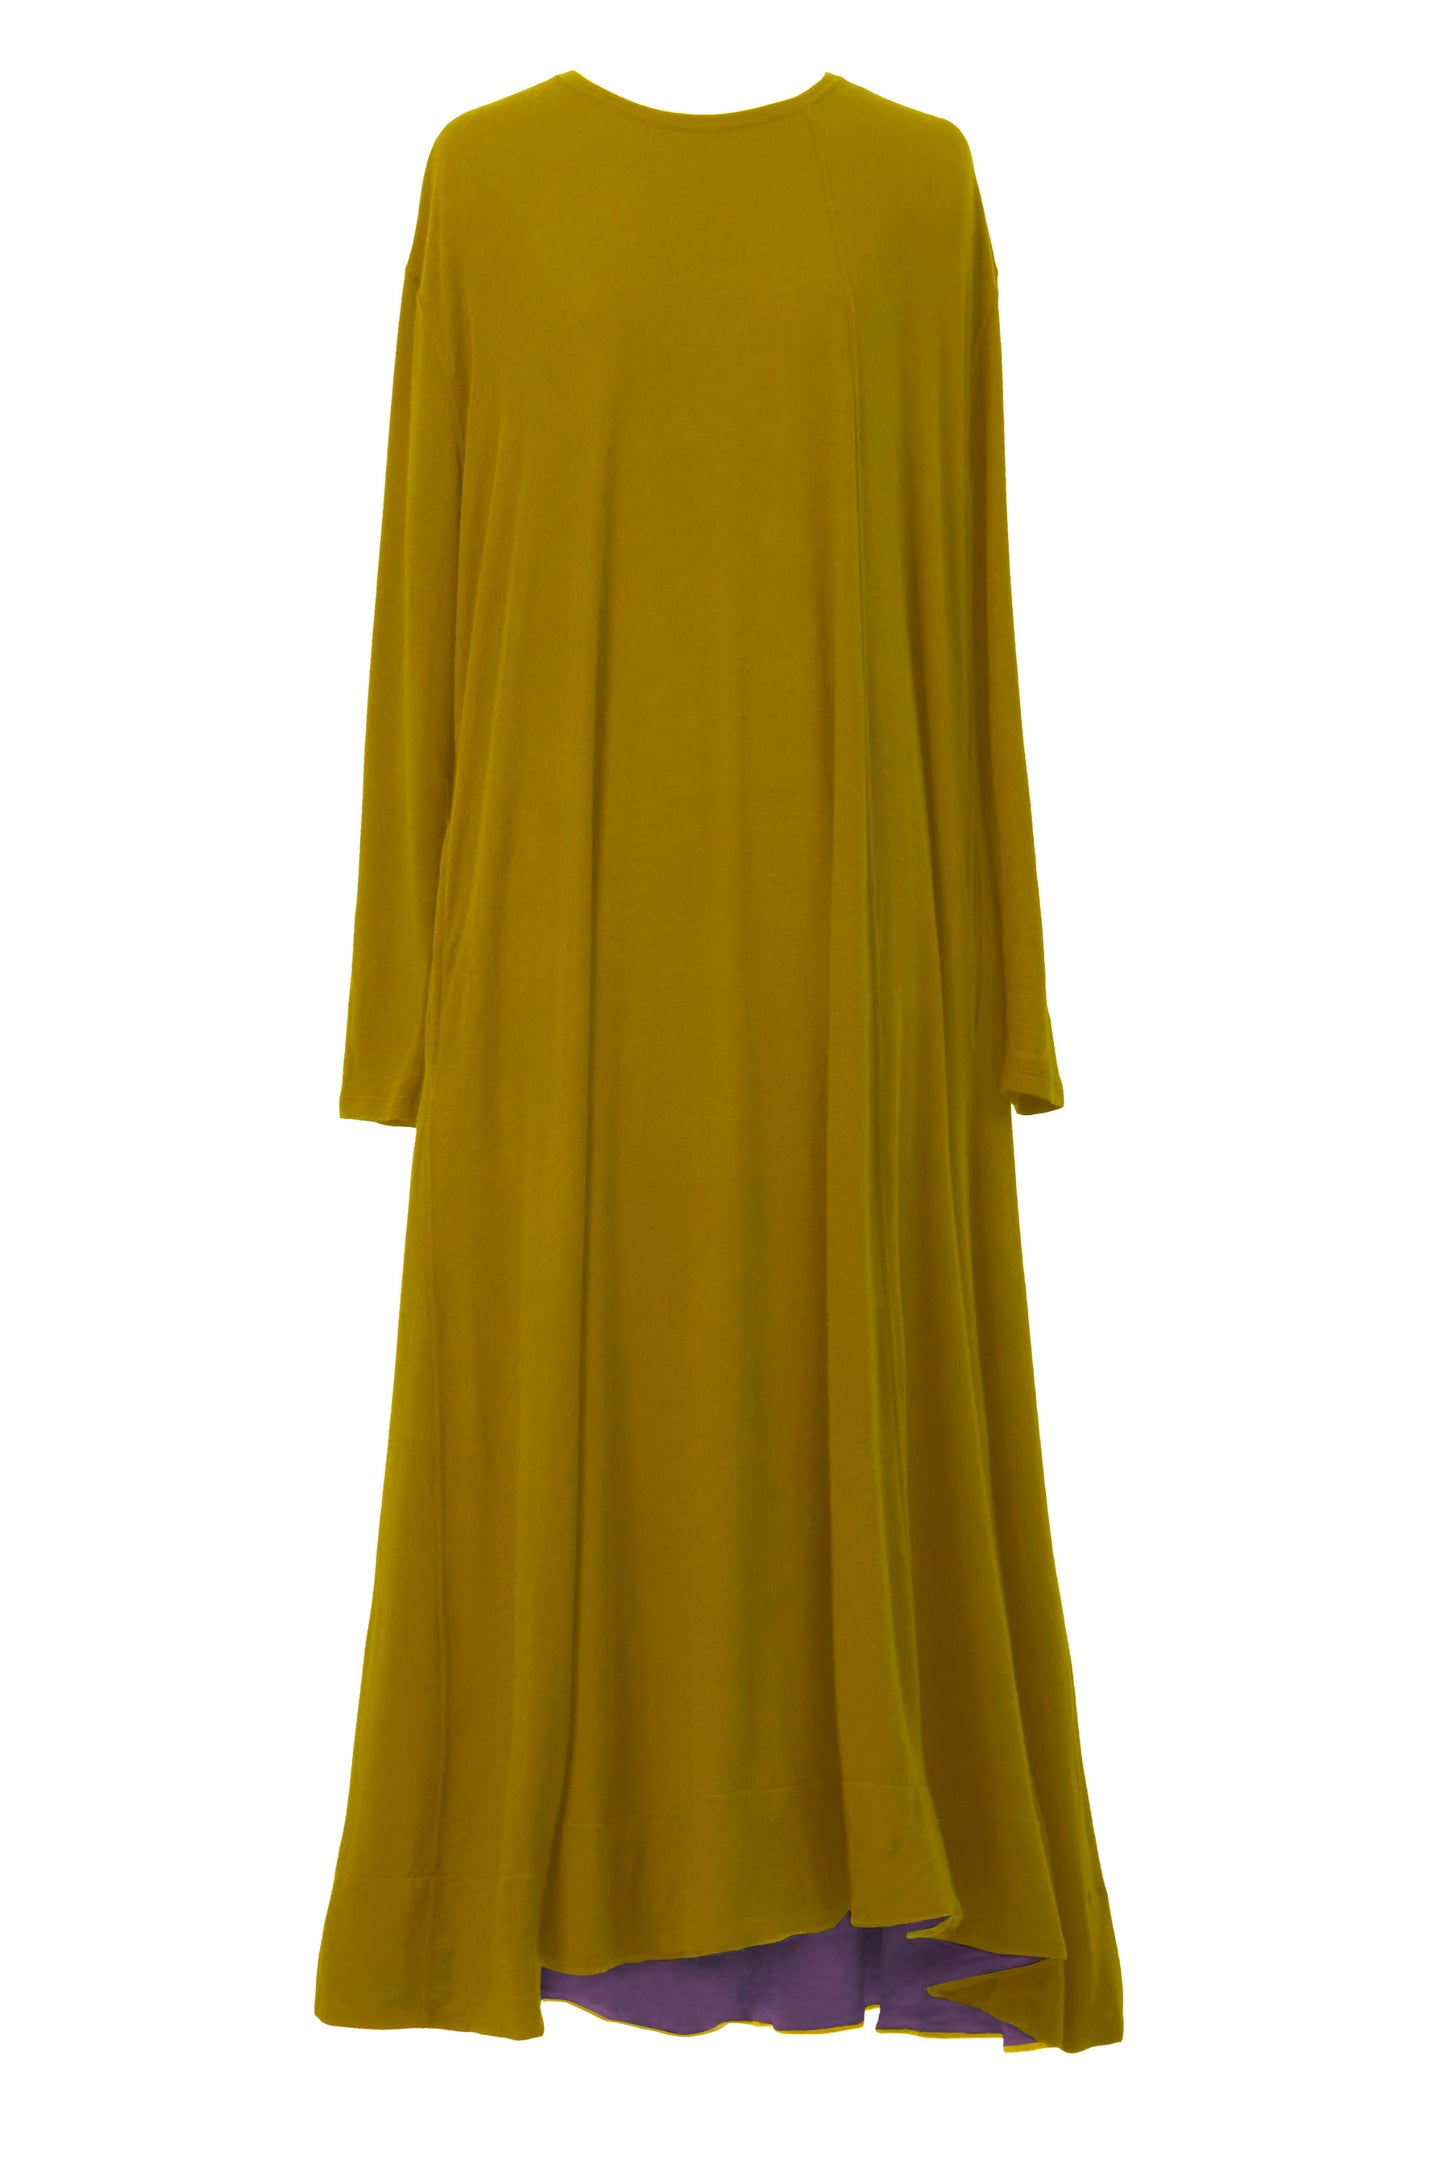 Cashmere Blend Dress | Citrine